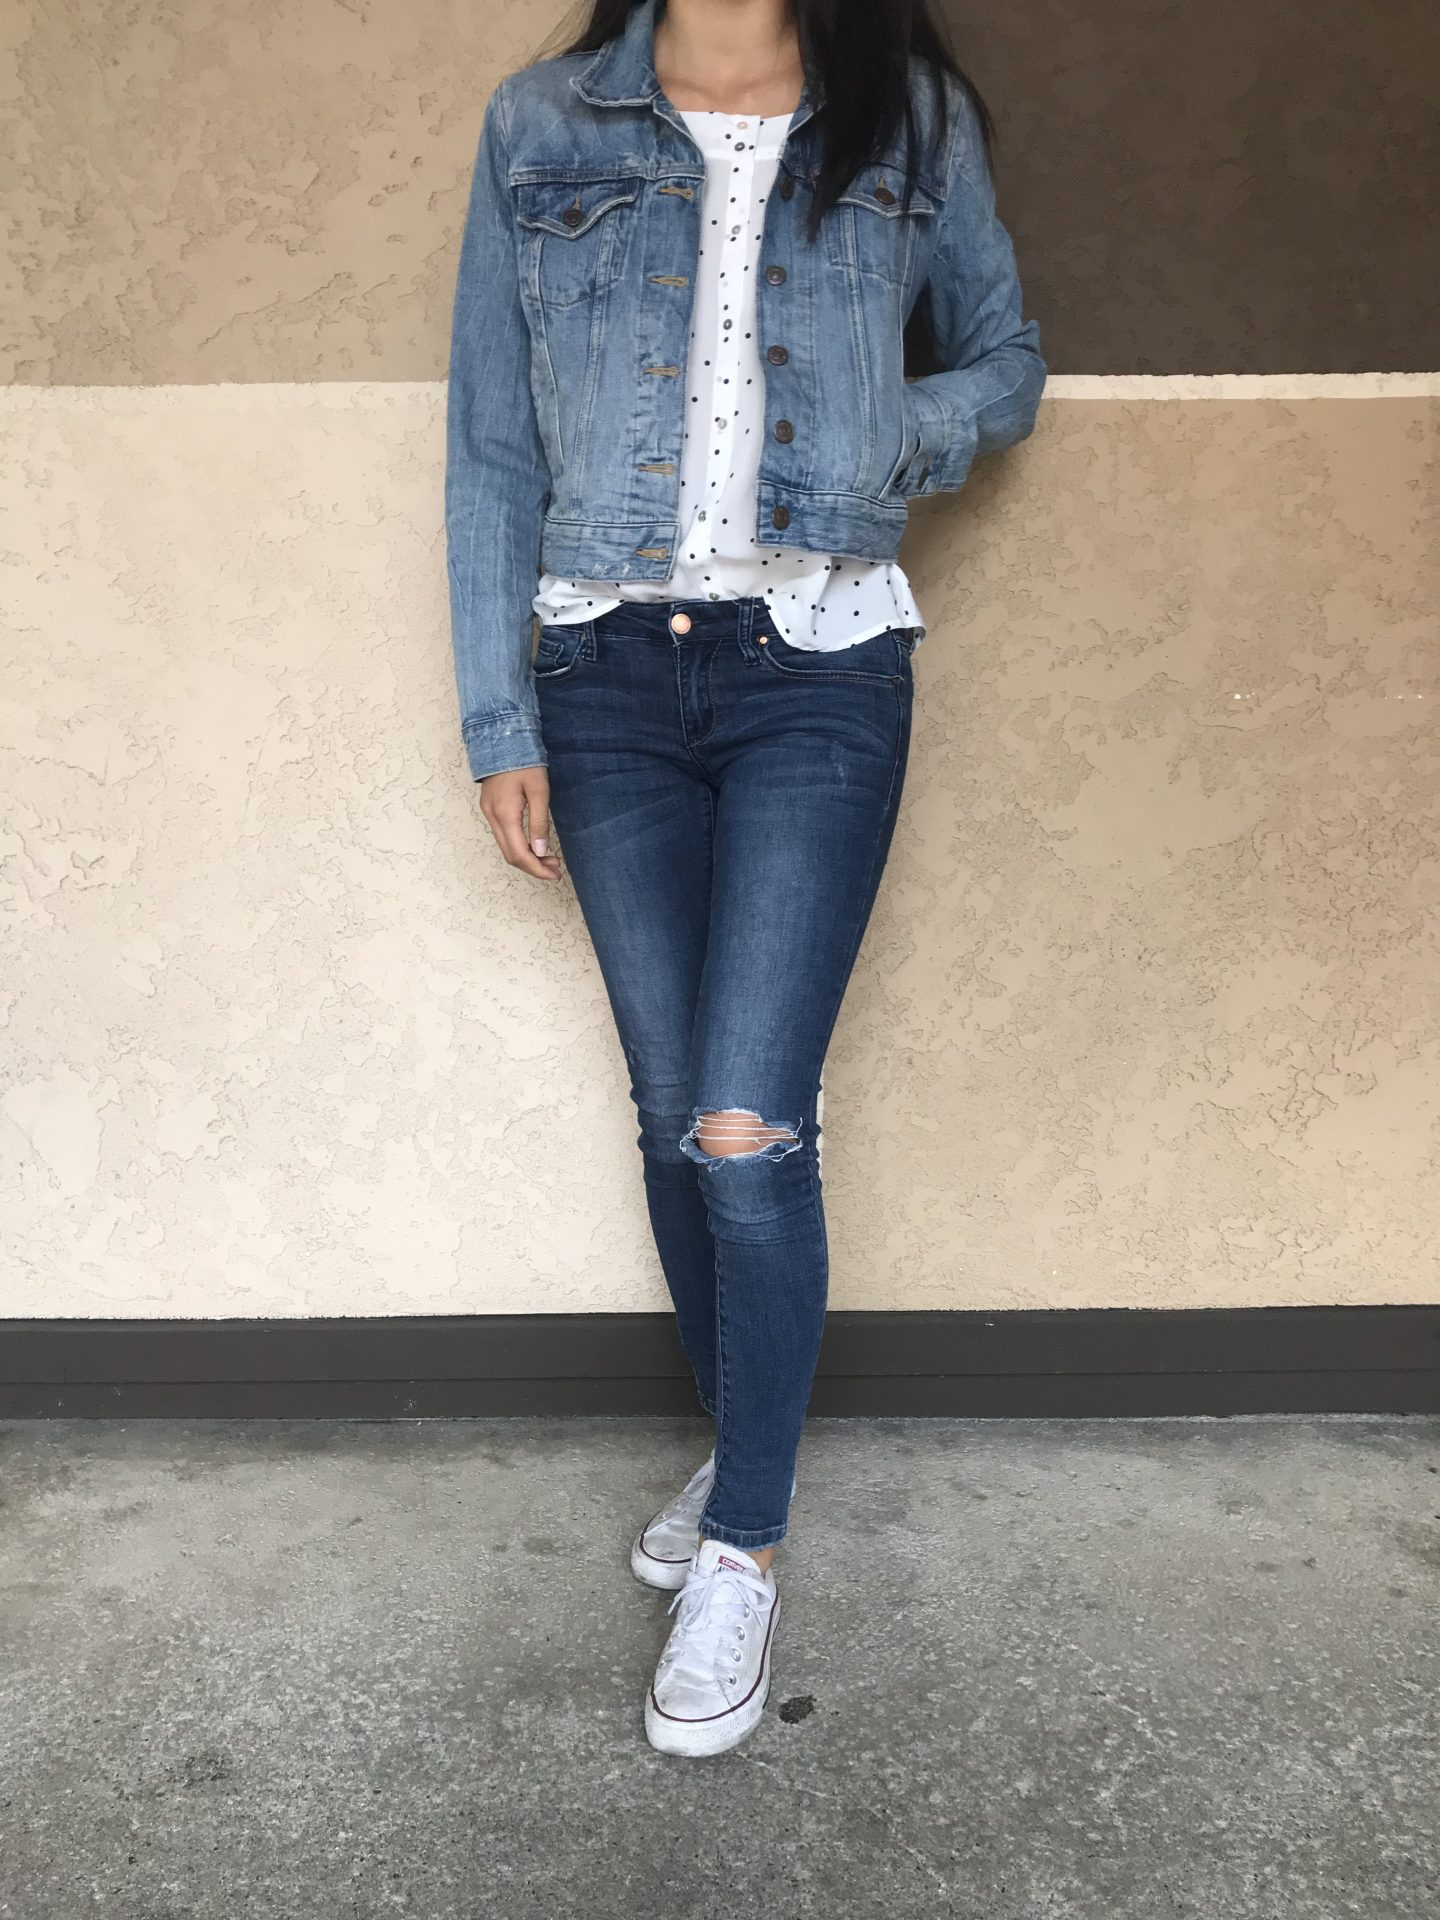 Curious how to style a jean jacket? Los Angeles Blogger My Teacher Got Style is sharing her top 3 ways to style jean jackets HERE!